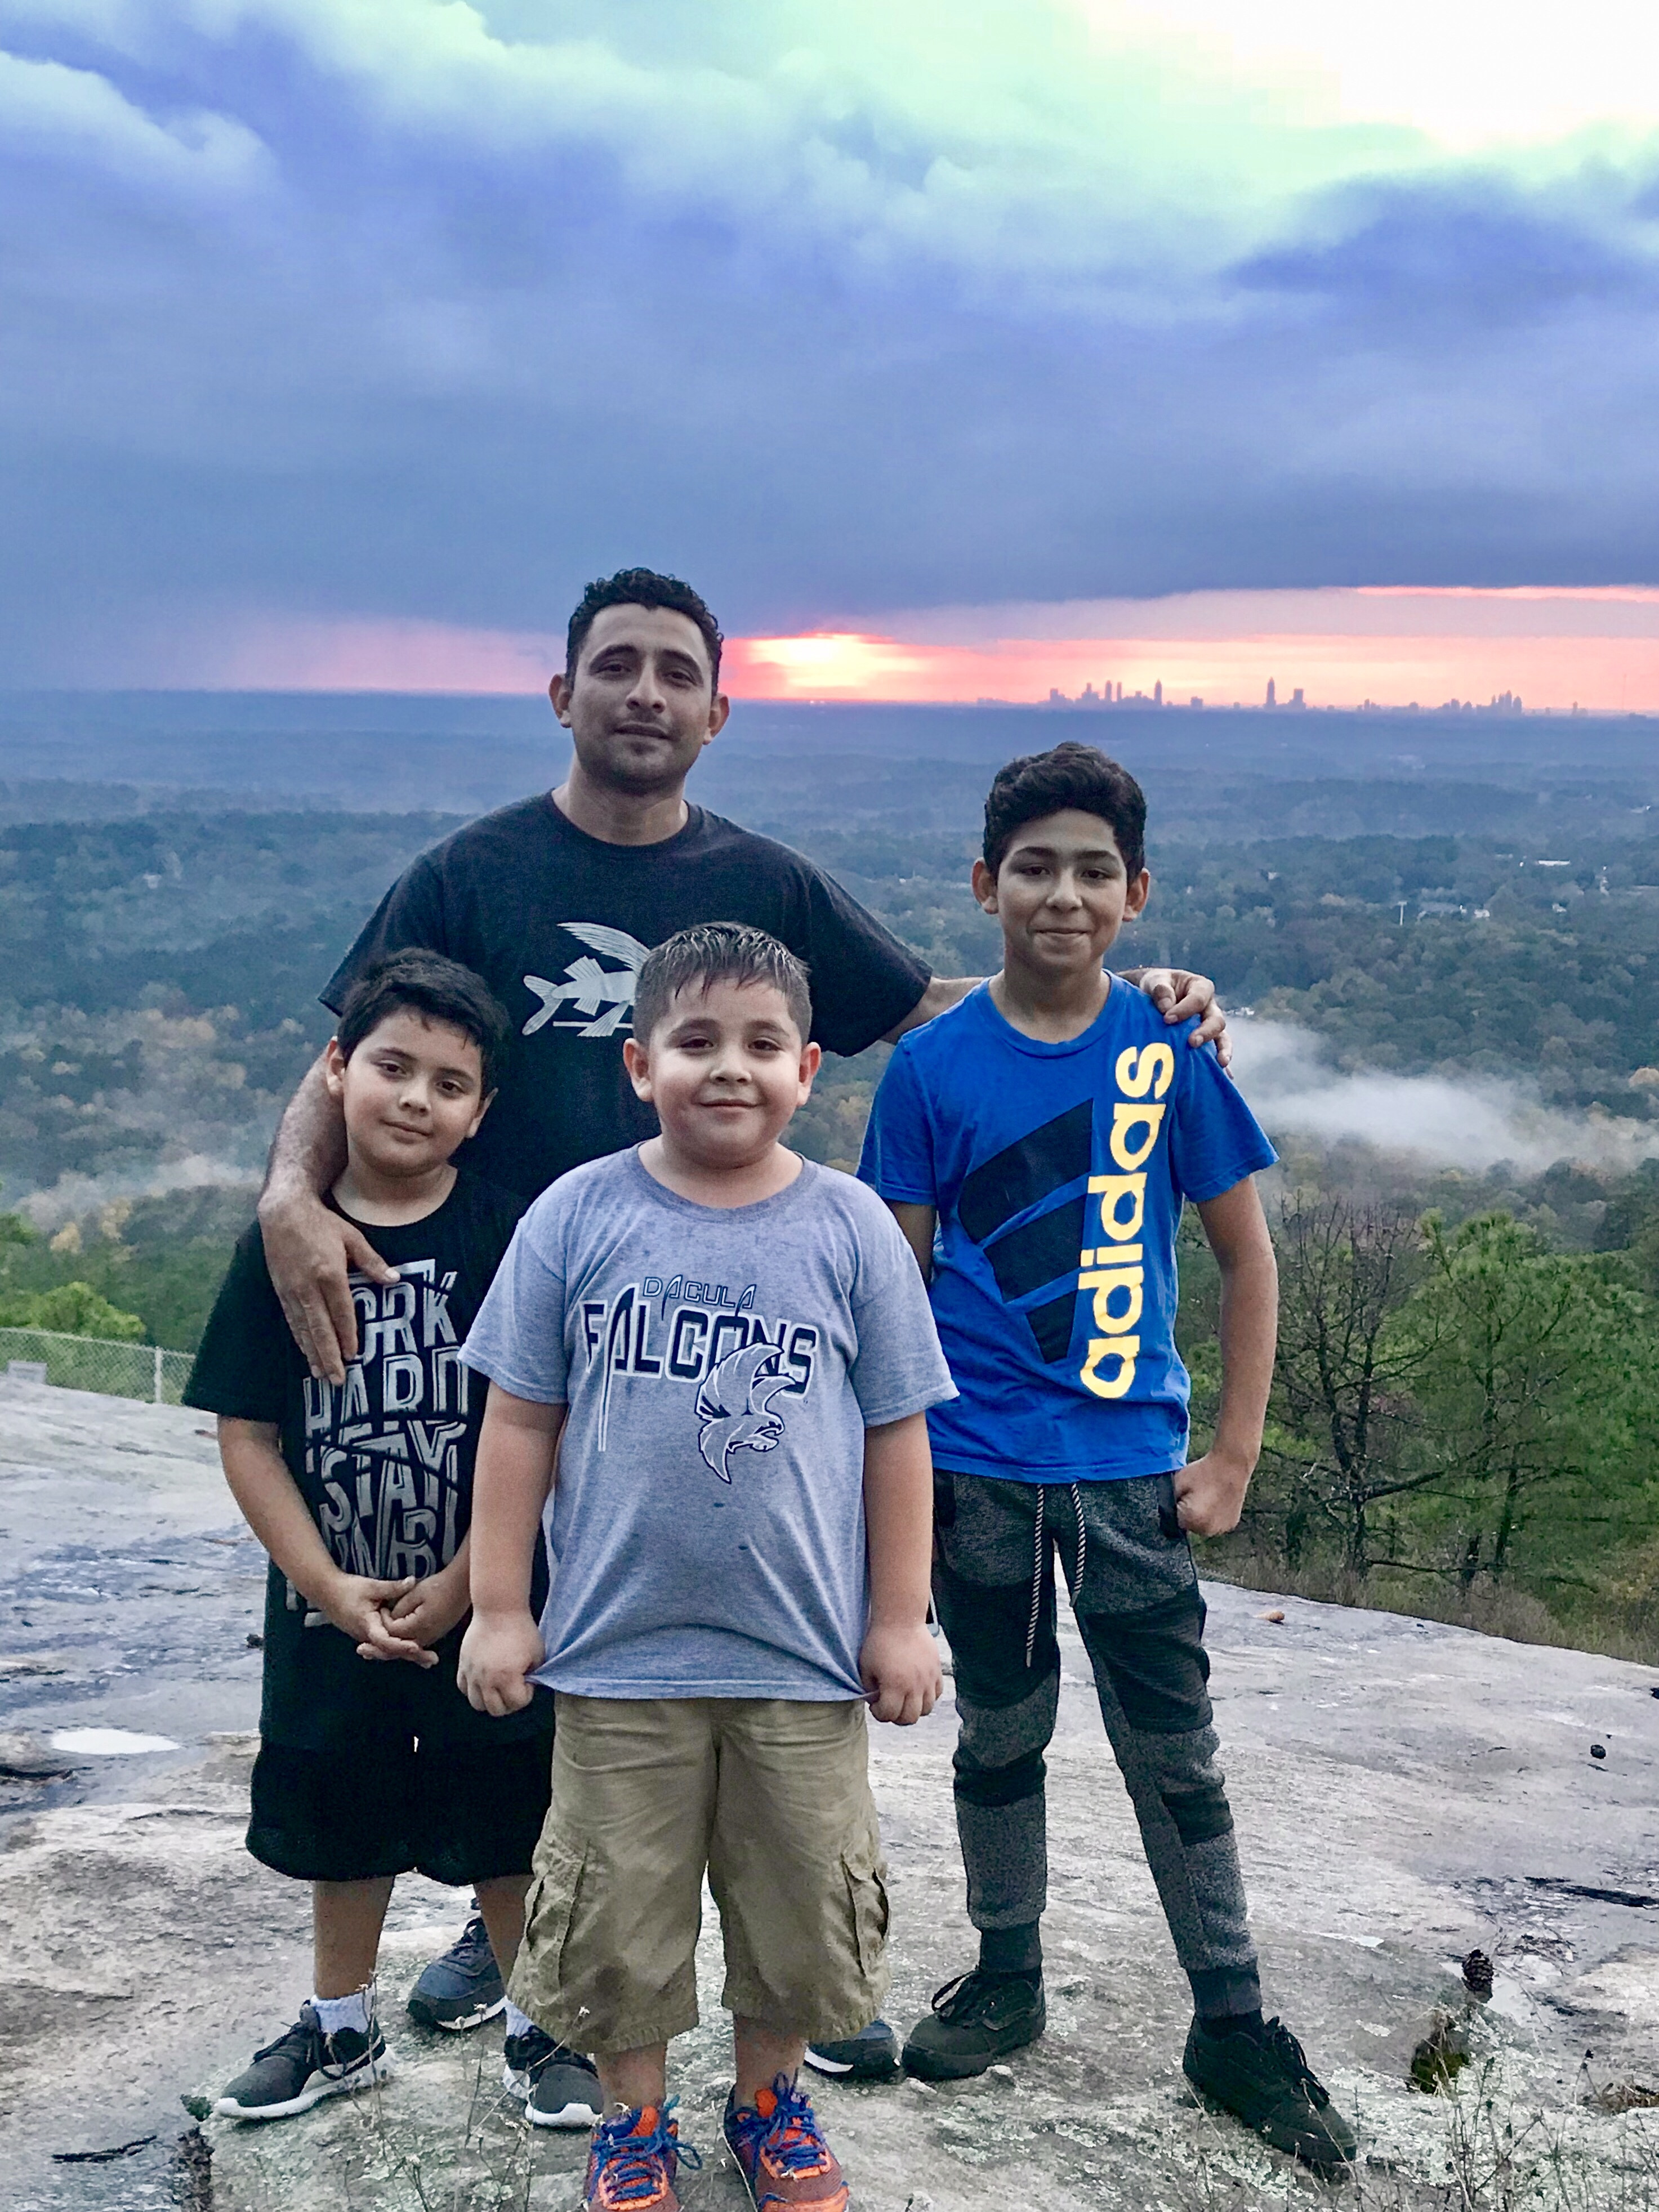 Angel and his sons (and nephew), originally from El Salvador, live nearby in Snellville. 🇸🇻